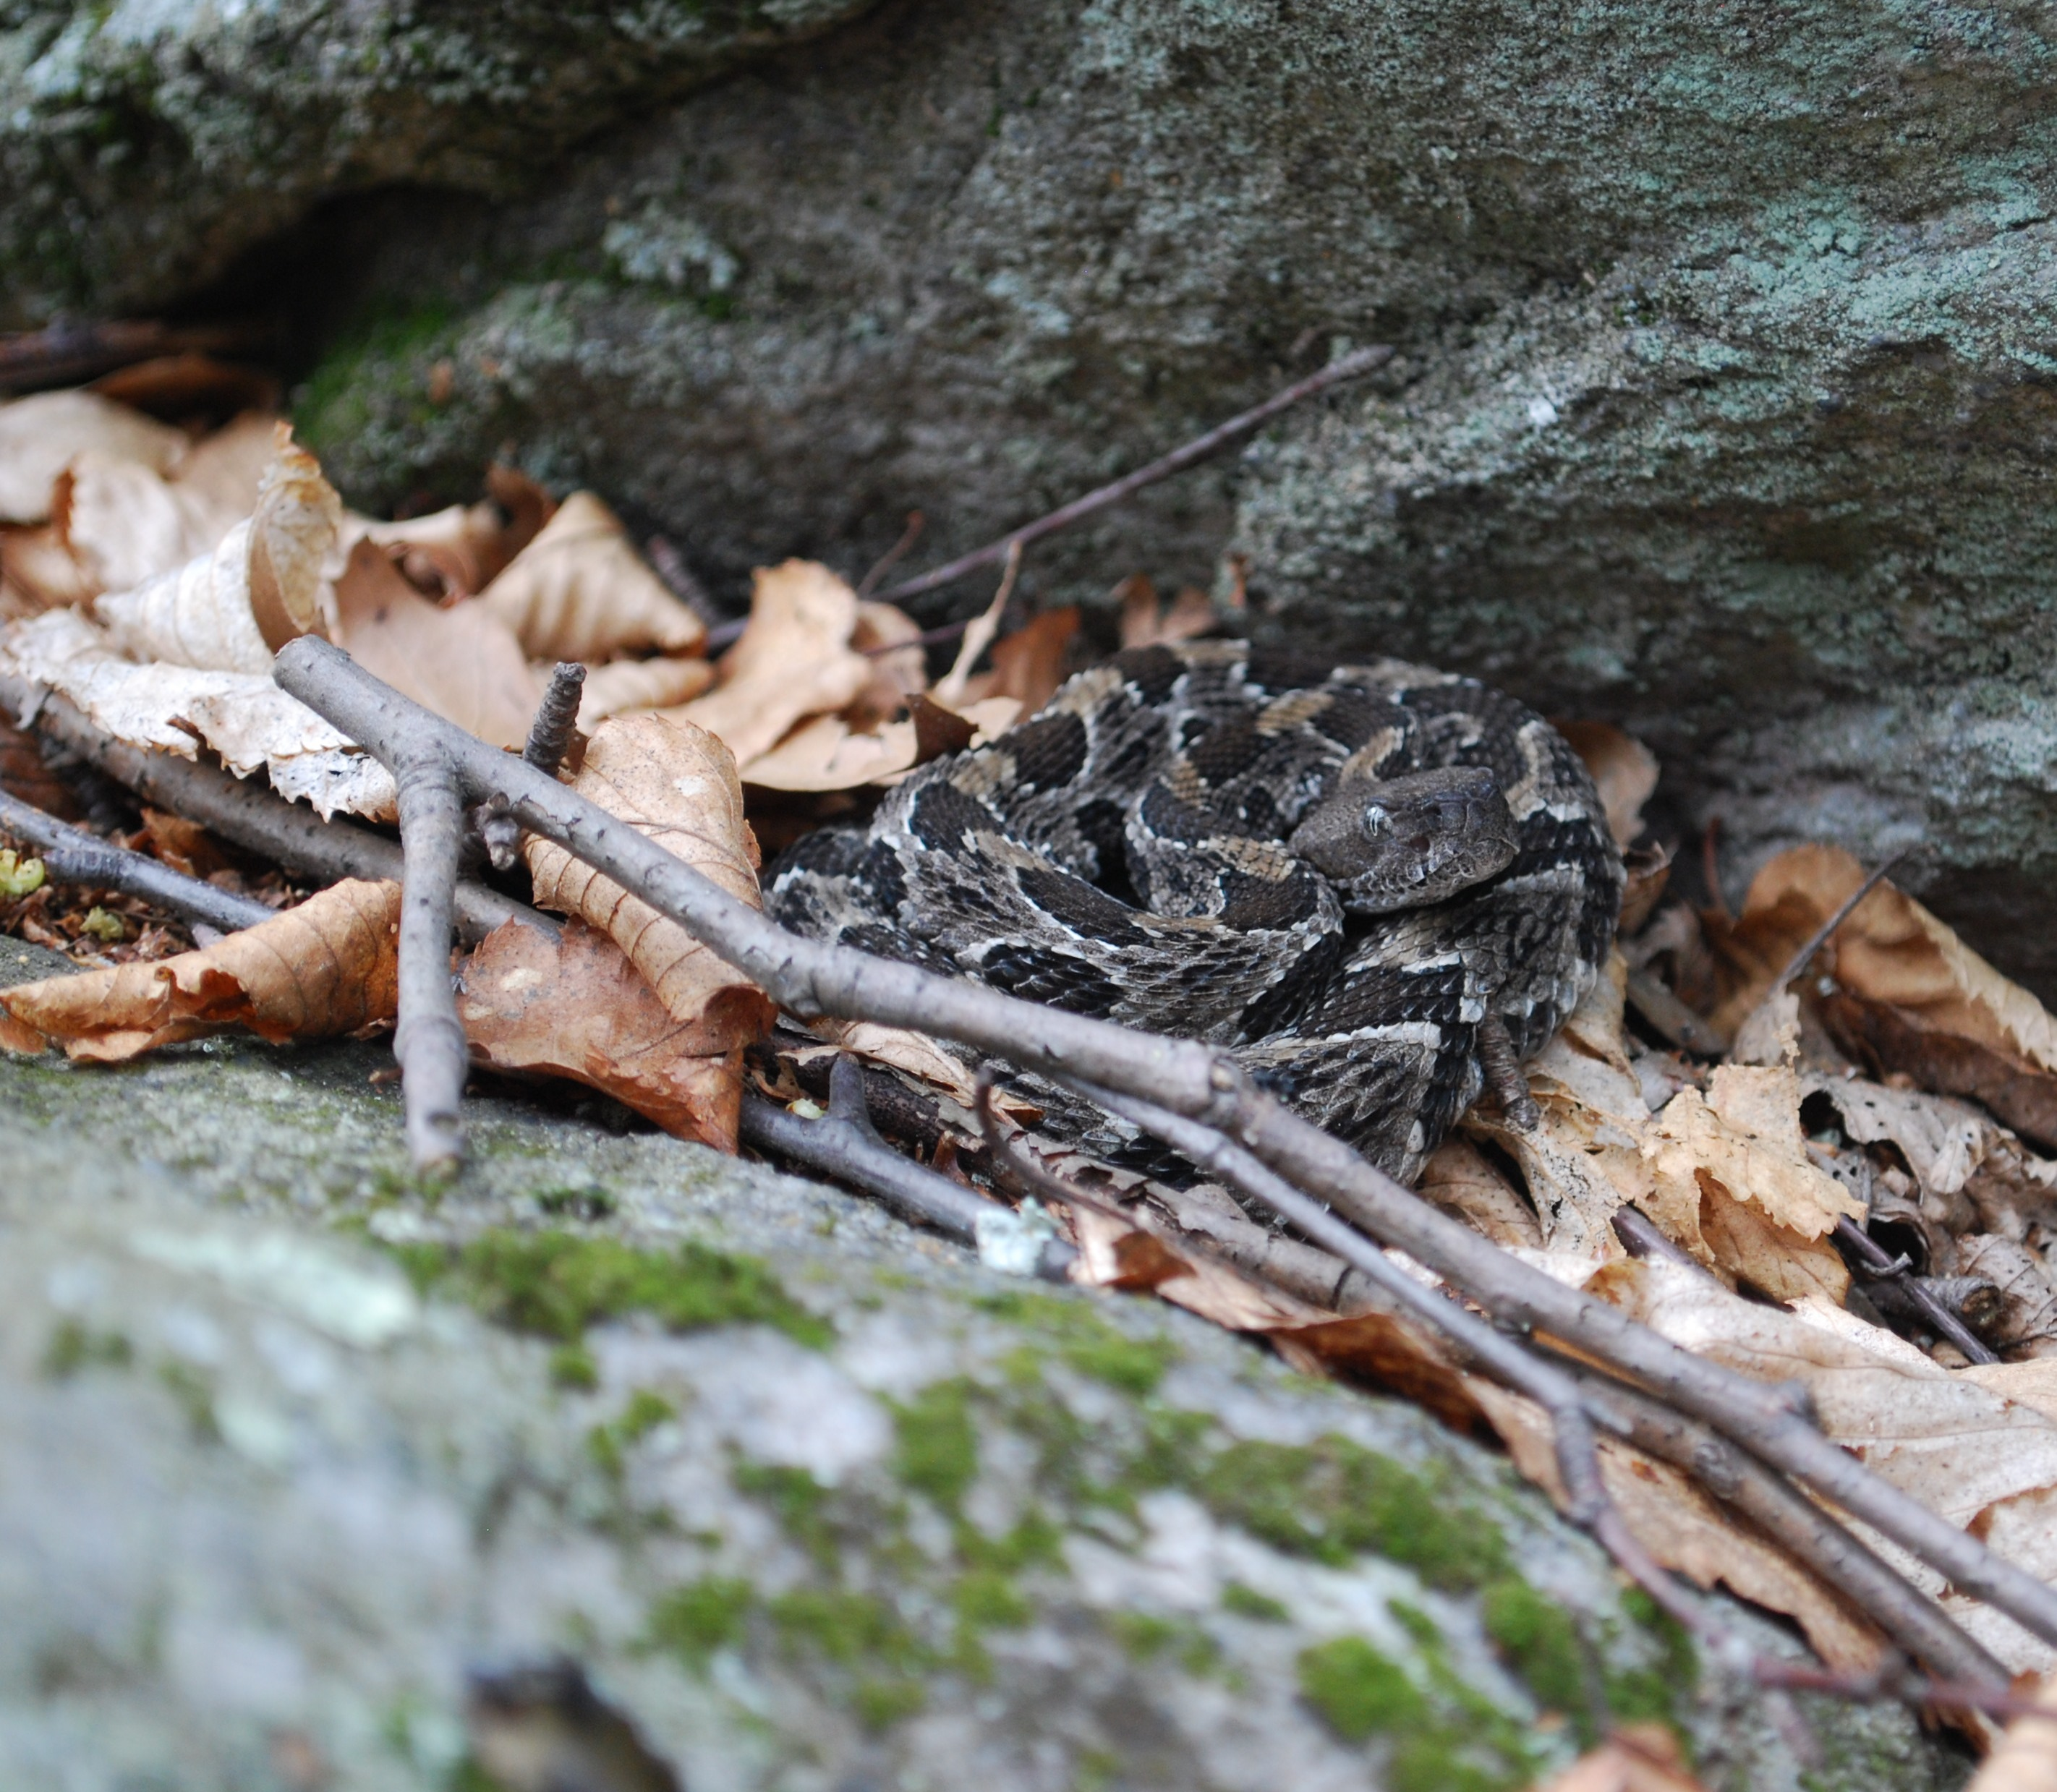 Timber rattlesnake. Credit: Ed Kabay